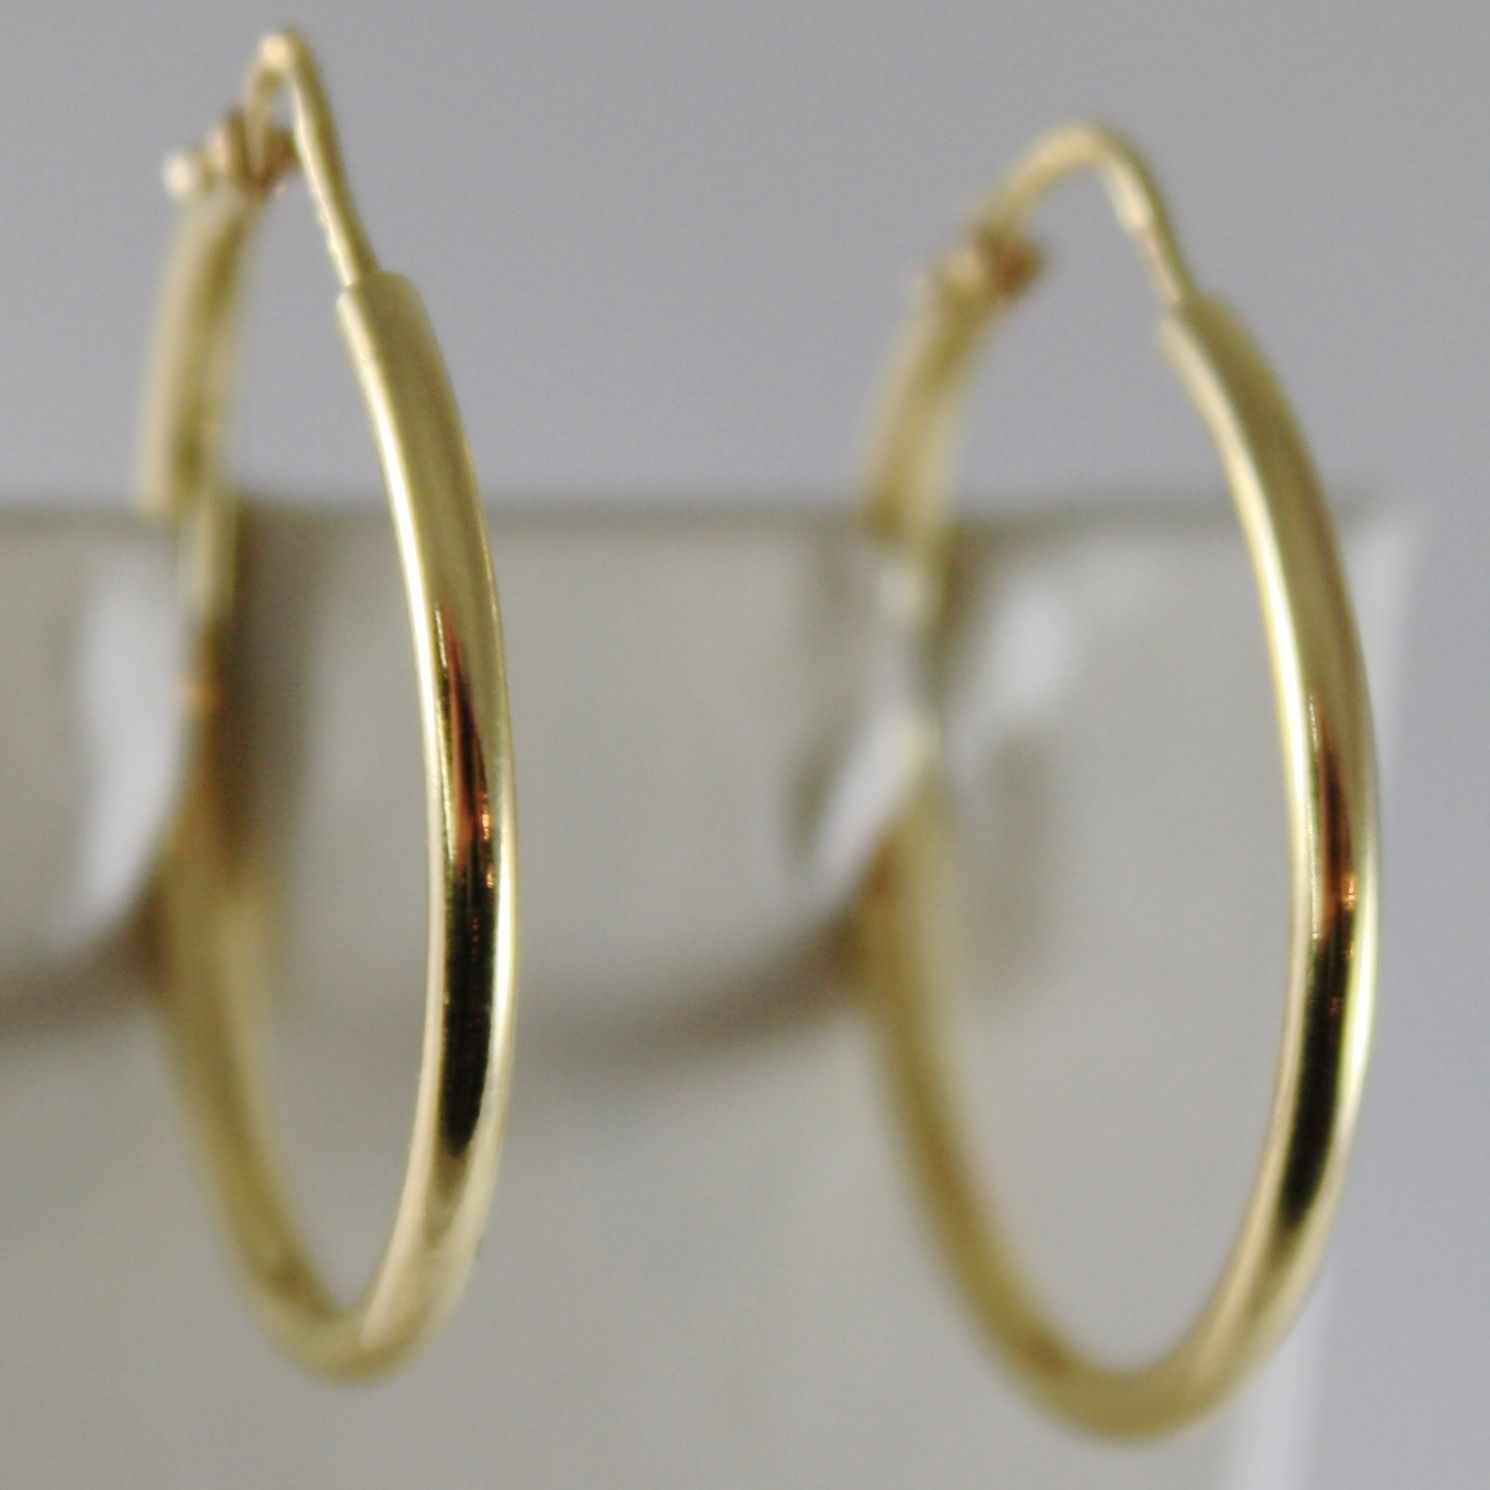 18K YELLOW GOLD EARRINGS CIRCLE HOOP 24 MM 0.94 INCHES DIAMETER MADE IN ITALY